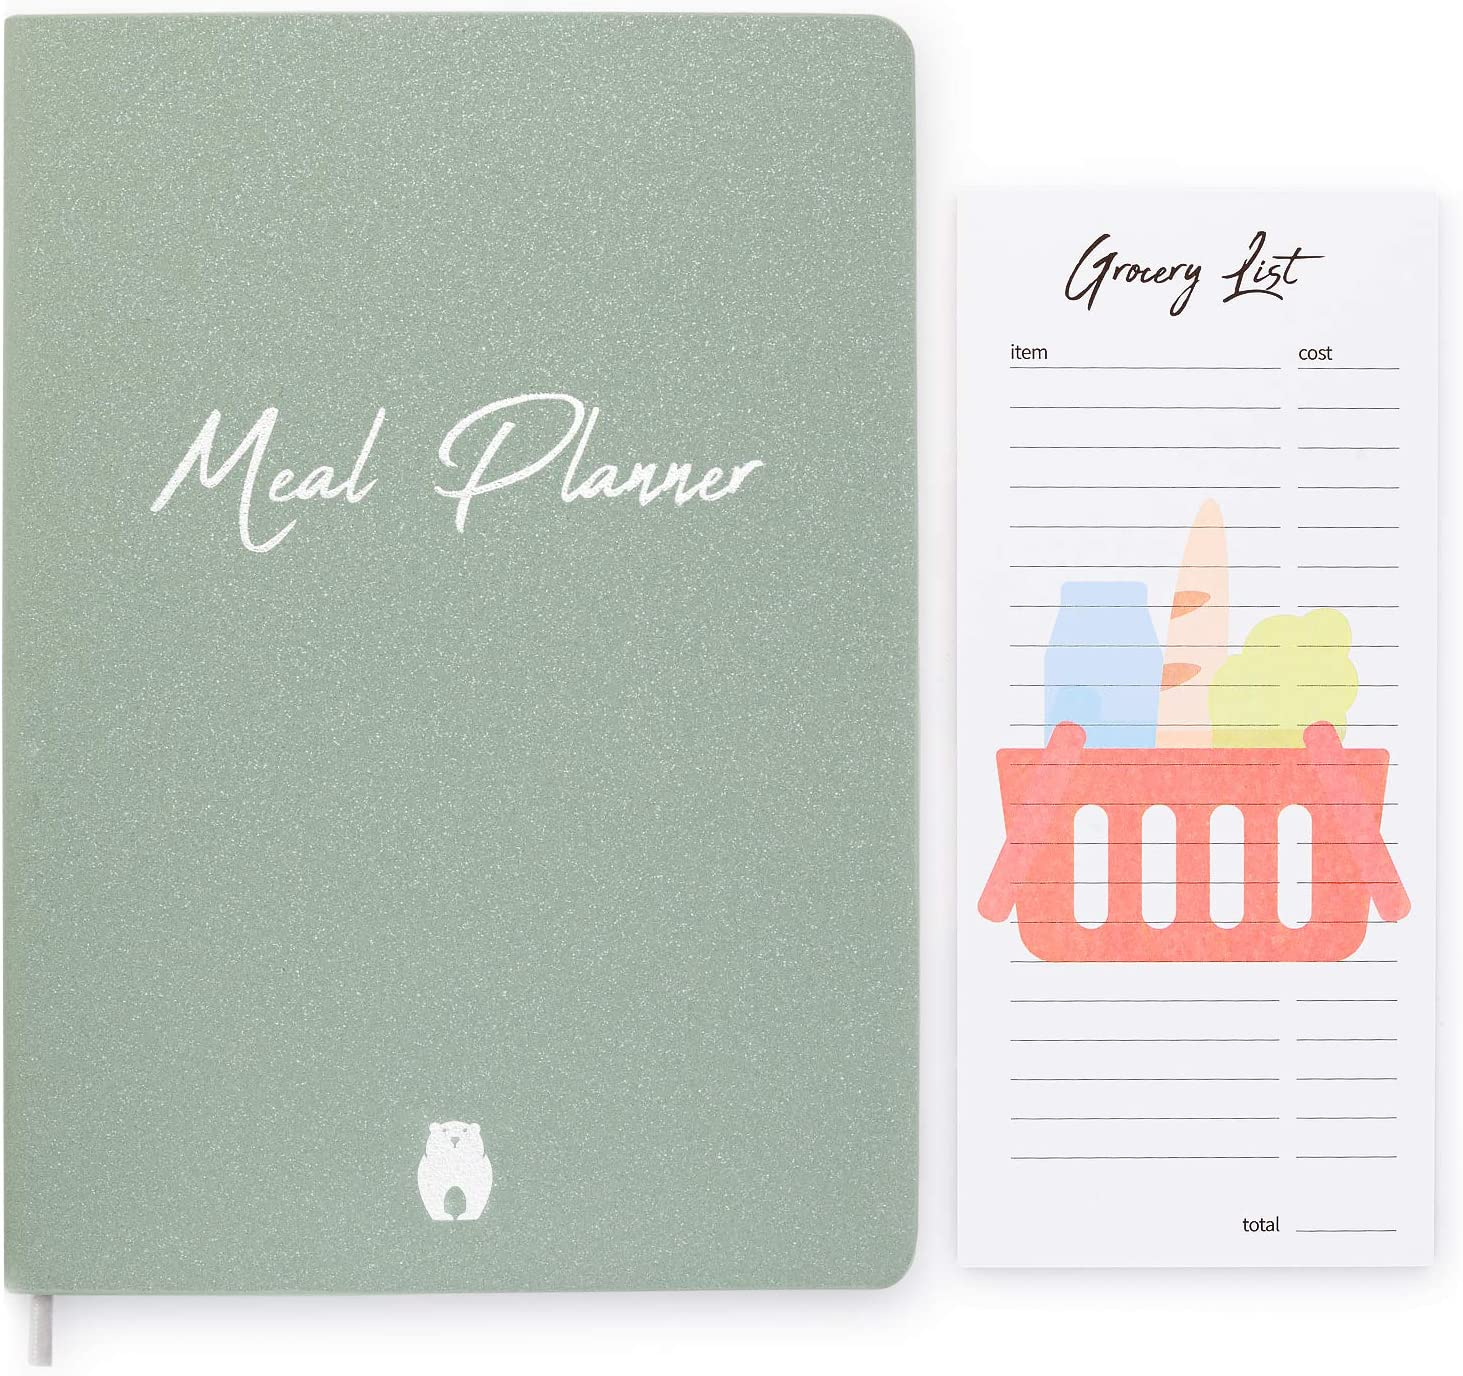 Meal Planner with Grocery List Notepad - Unique Bundle to Plan Your Meals and Snacks - Weekly Meal Planner, Grocery Budget, Fridge Inventory, Pill Tracker